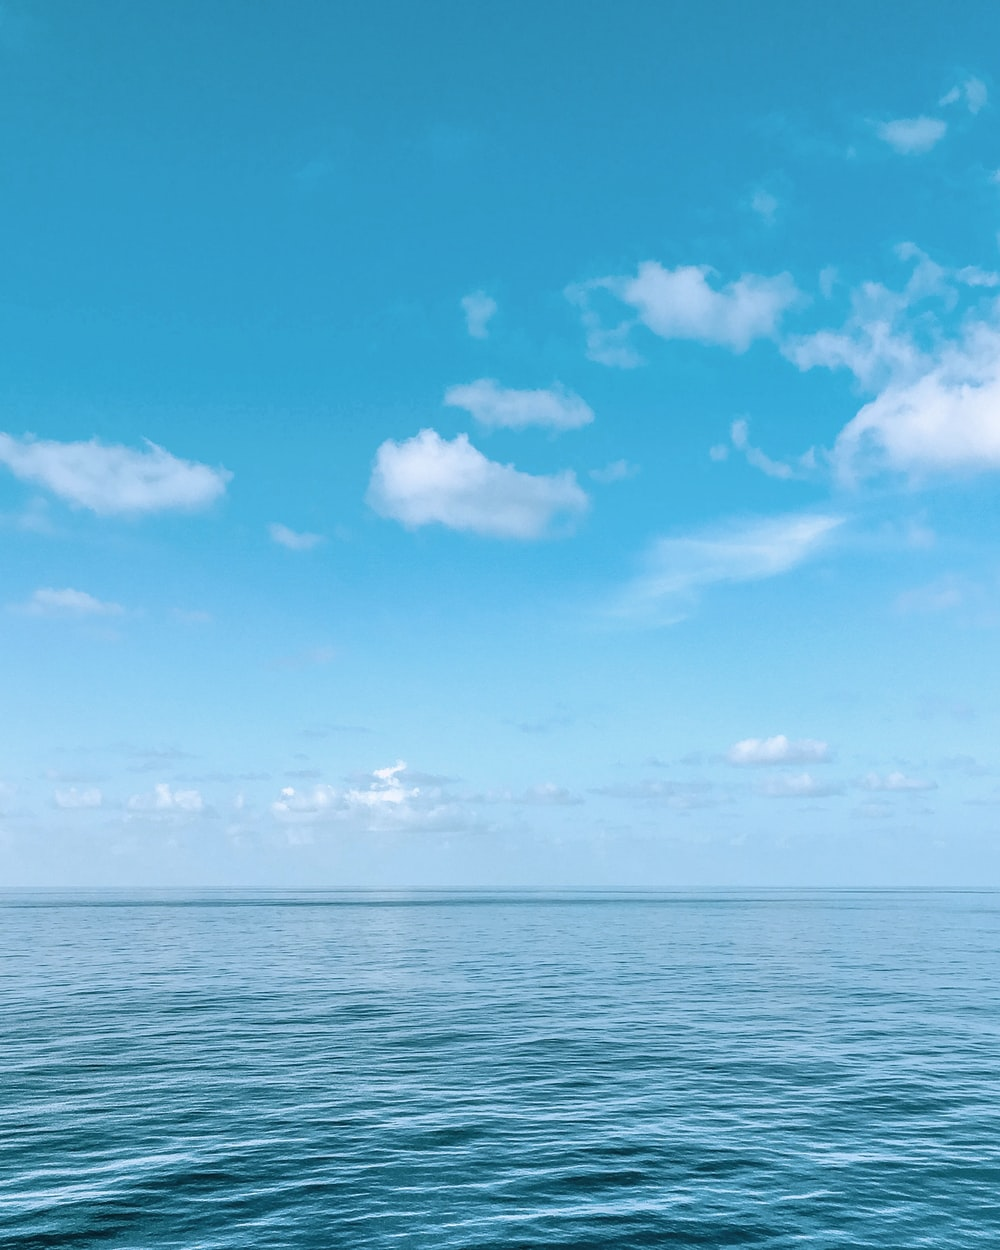 blue body of water under blue and white sky during daytime